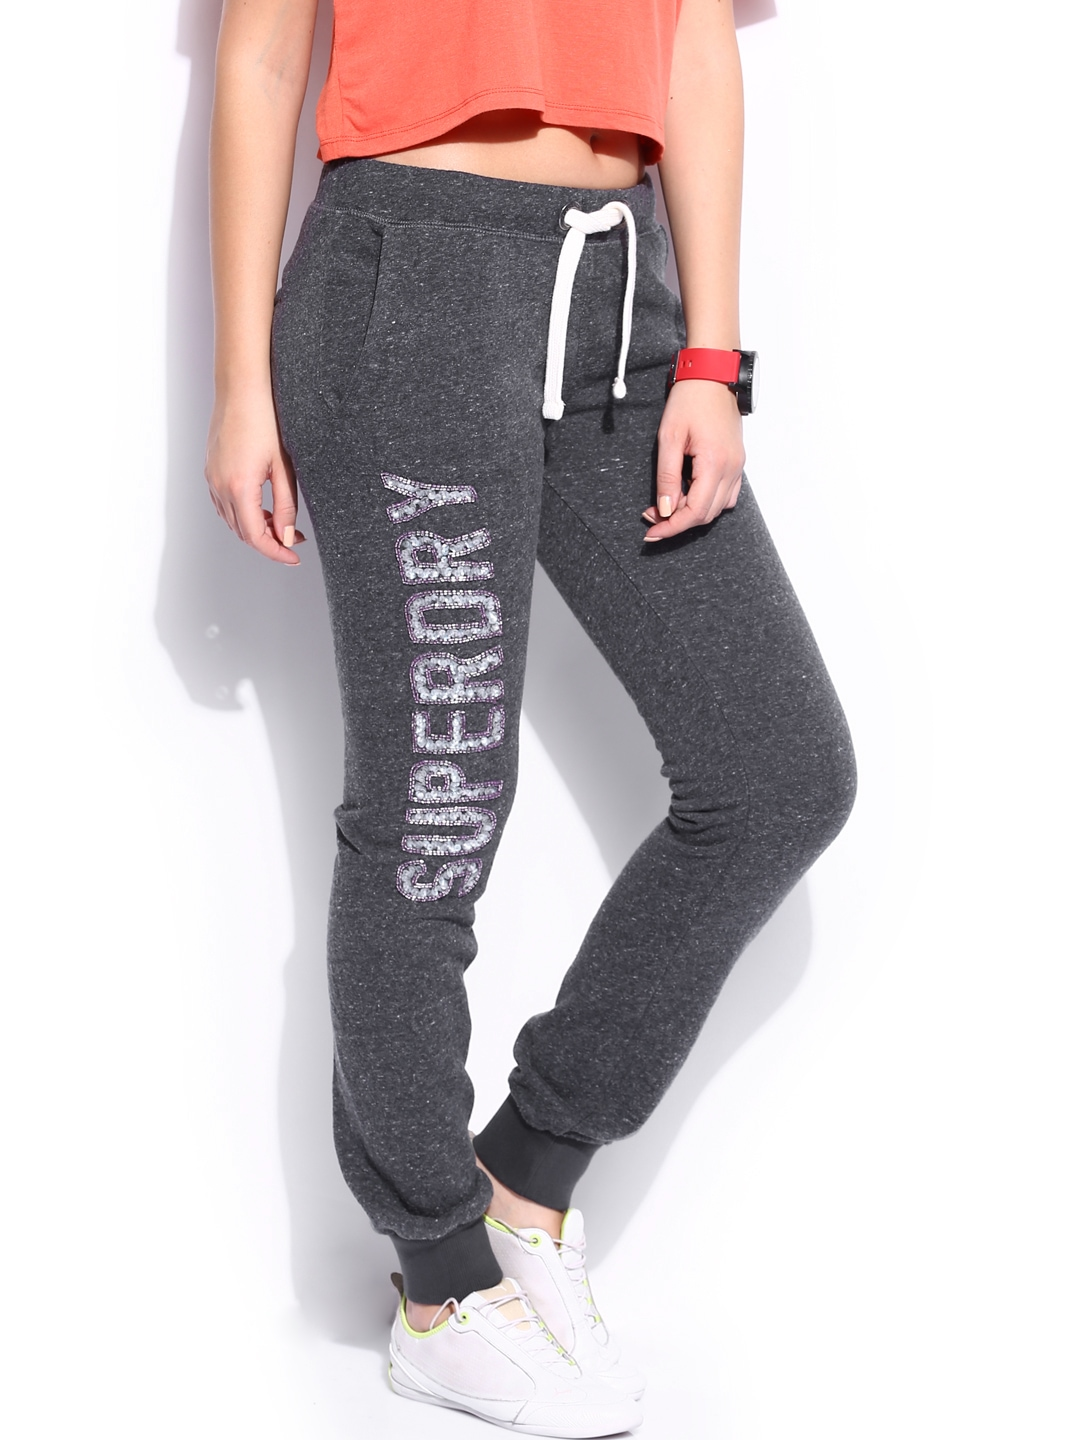 Wonderful Home Clothing Women Clothing Track Pants Camino Track Pants